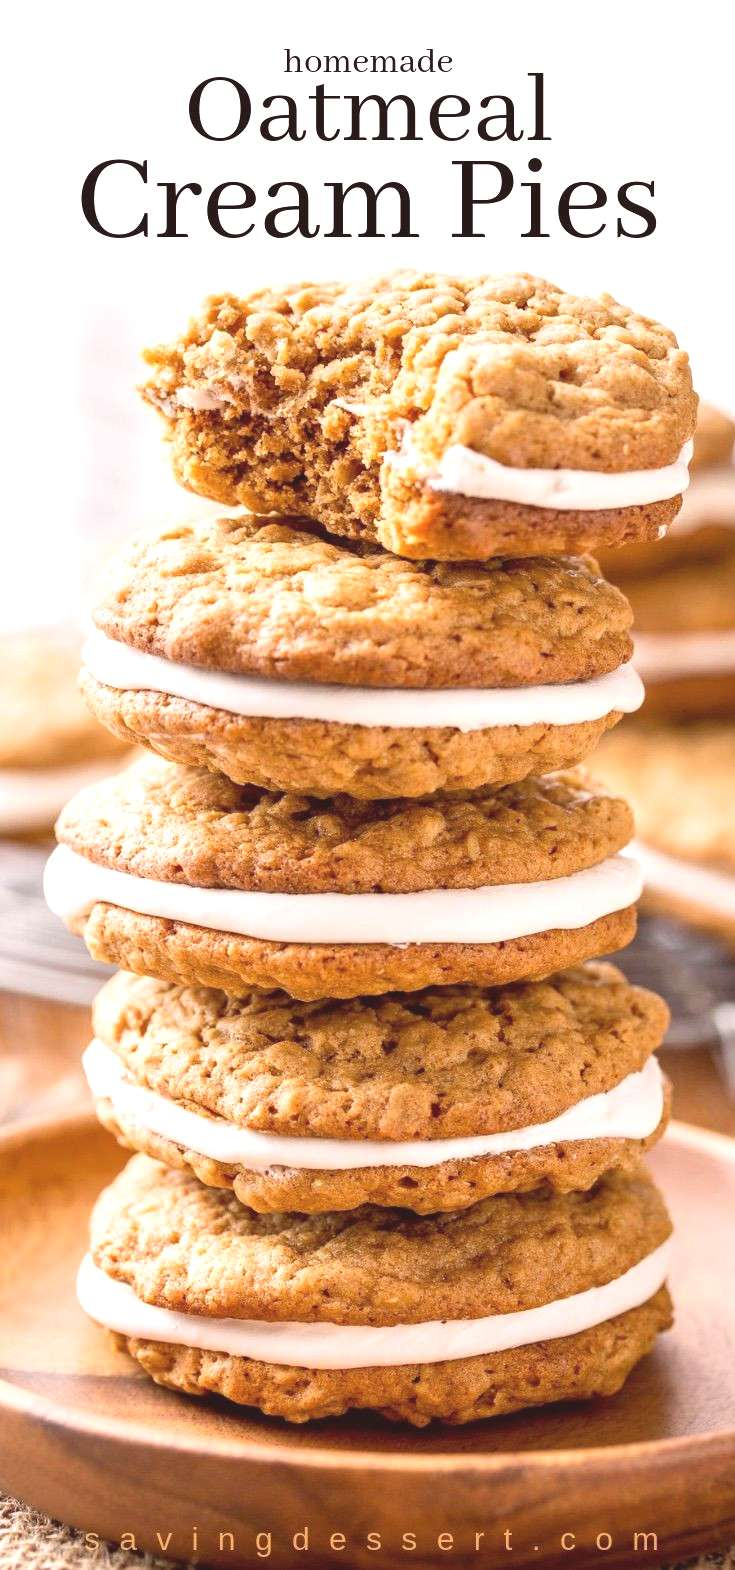 Oatmeal Cream Pies - soft, chewy oatmeal cookies with hints of cinnamon, molasses and coconut, with